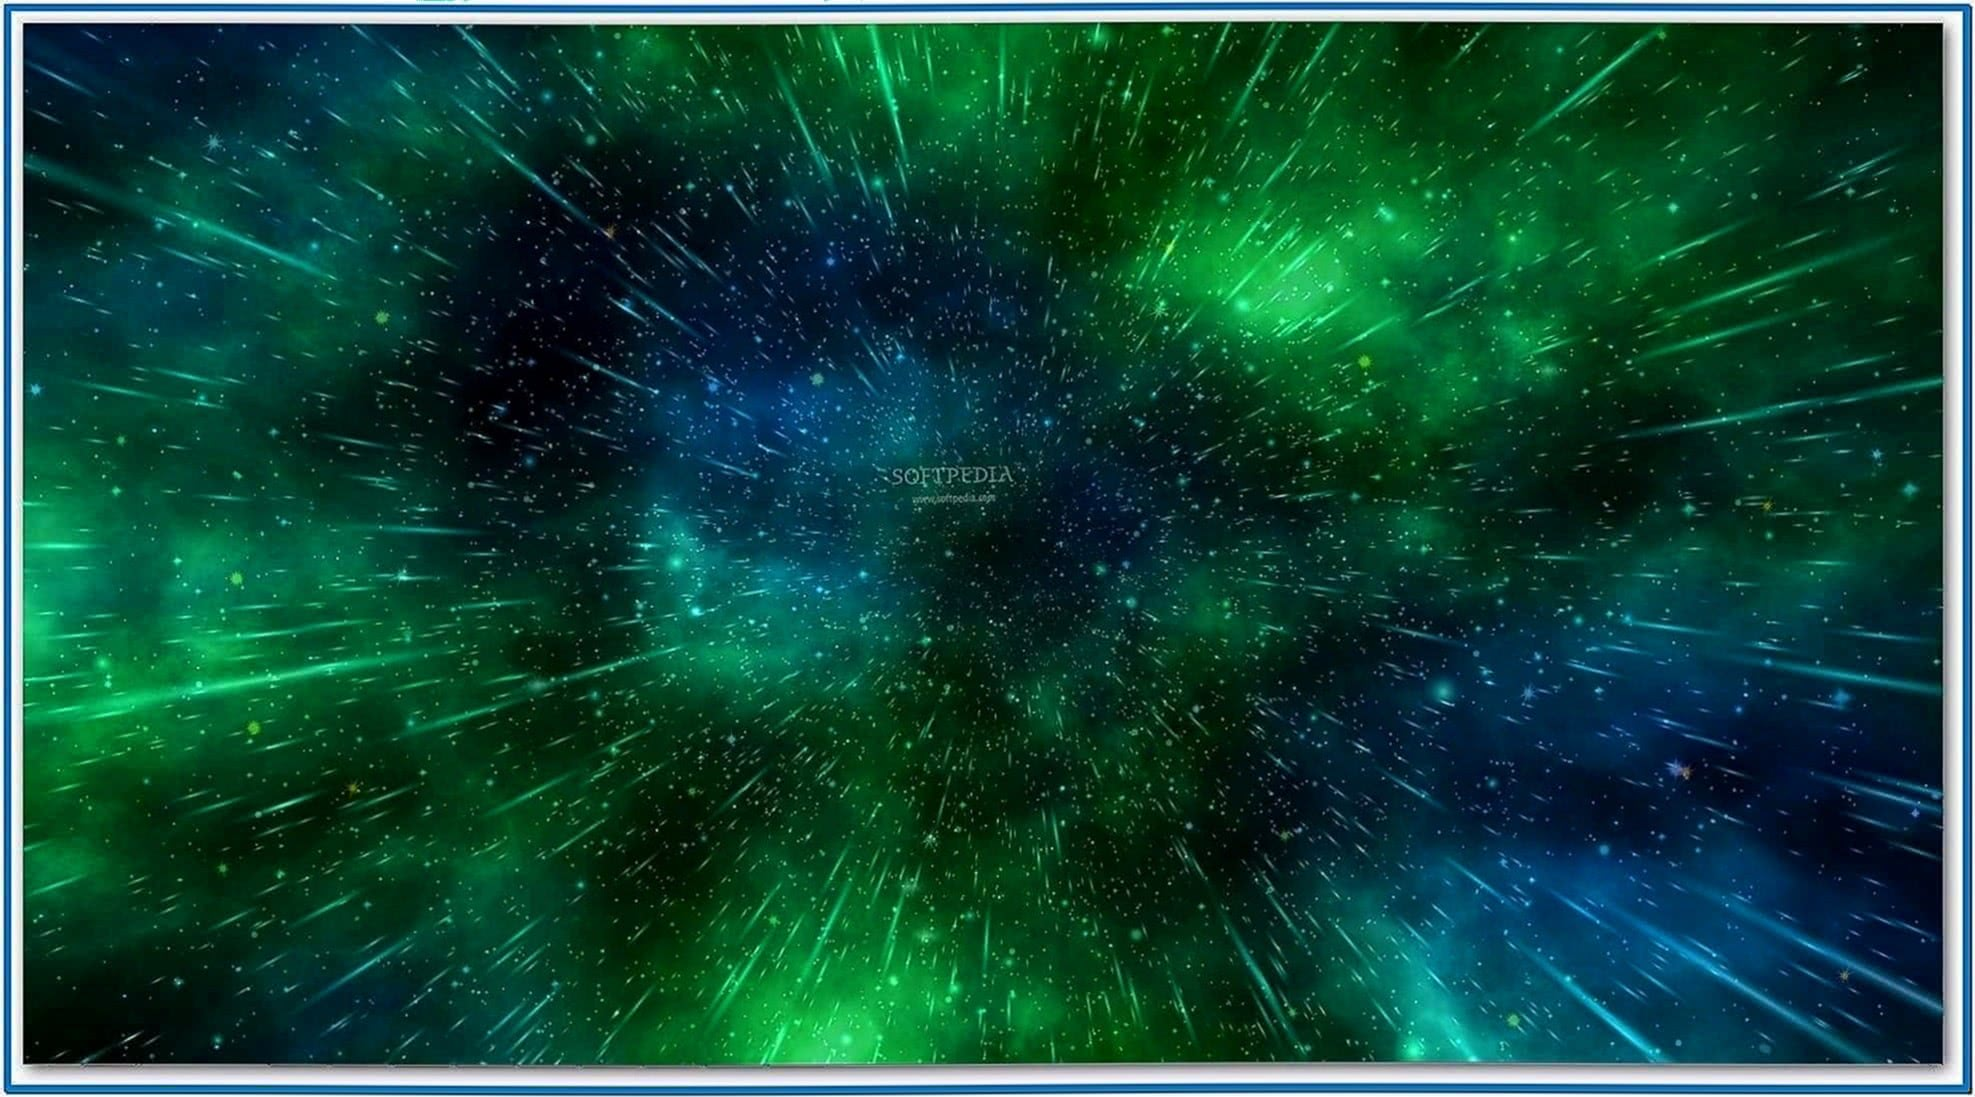 3D Moving Space Screensavers